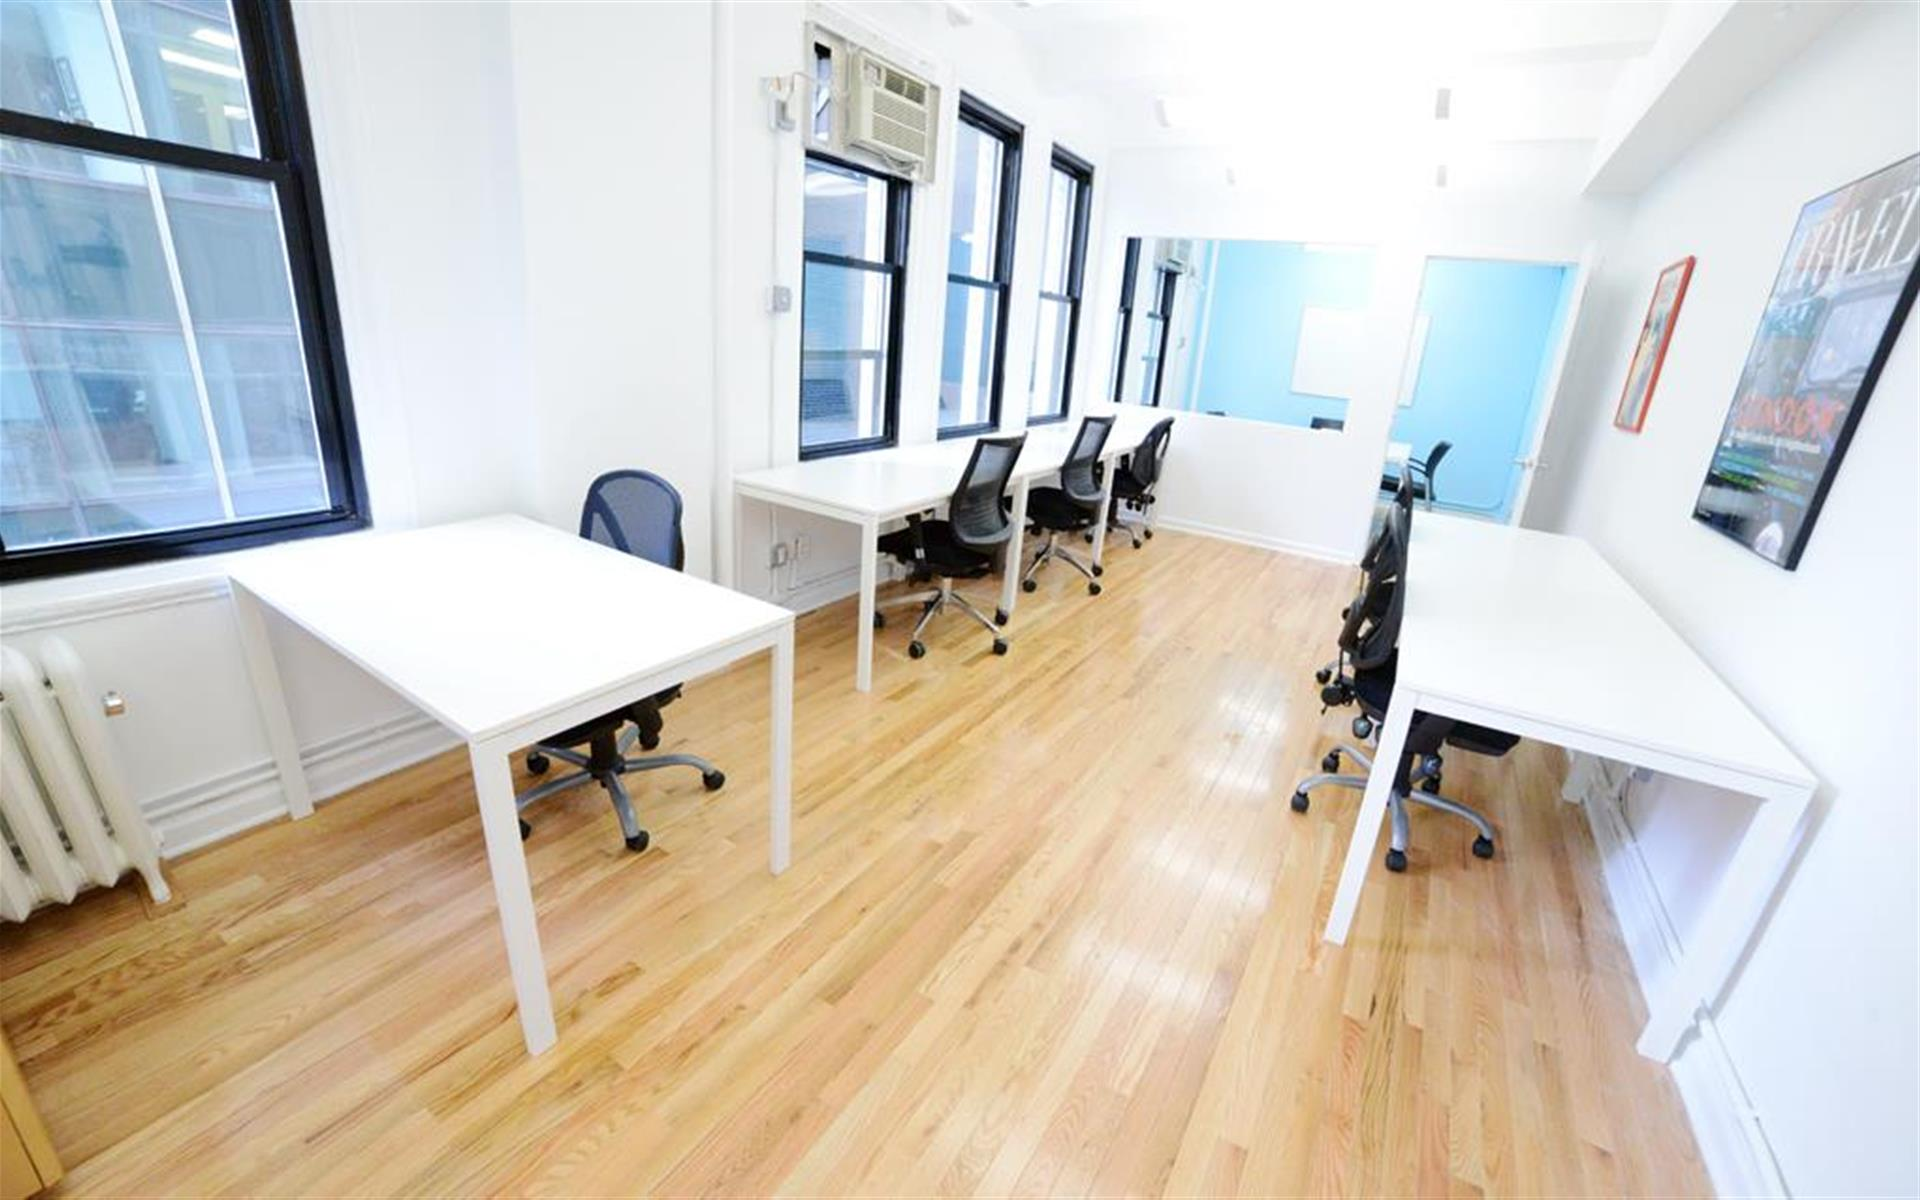 Amber Ventures: Bryant Park/ Midtown - Team Space for 4 to 8